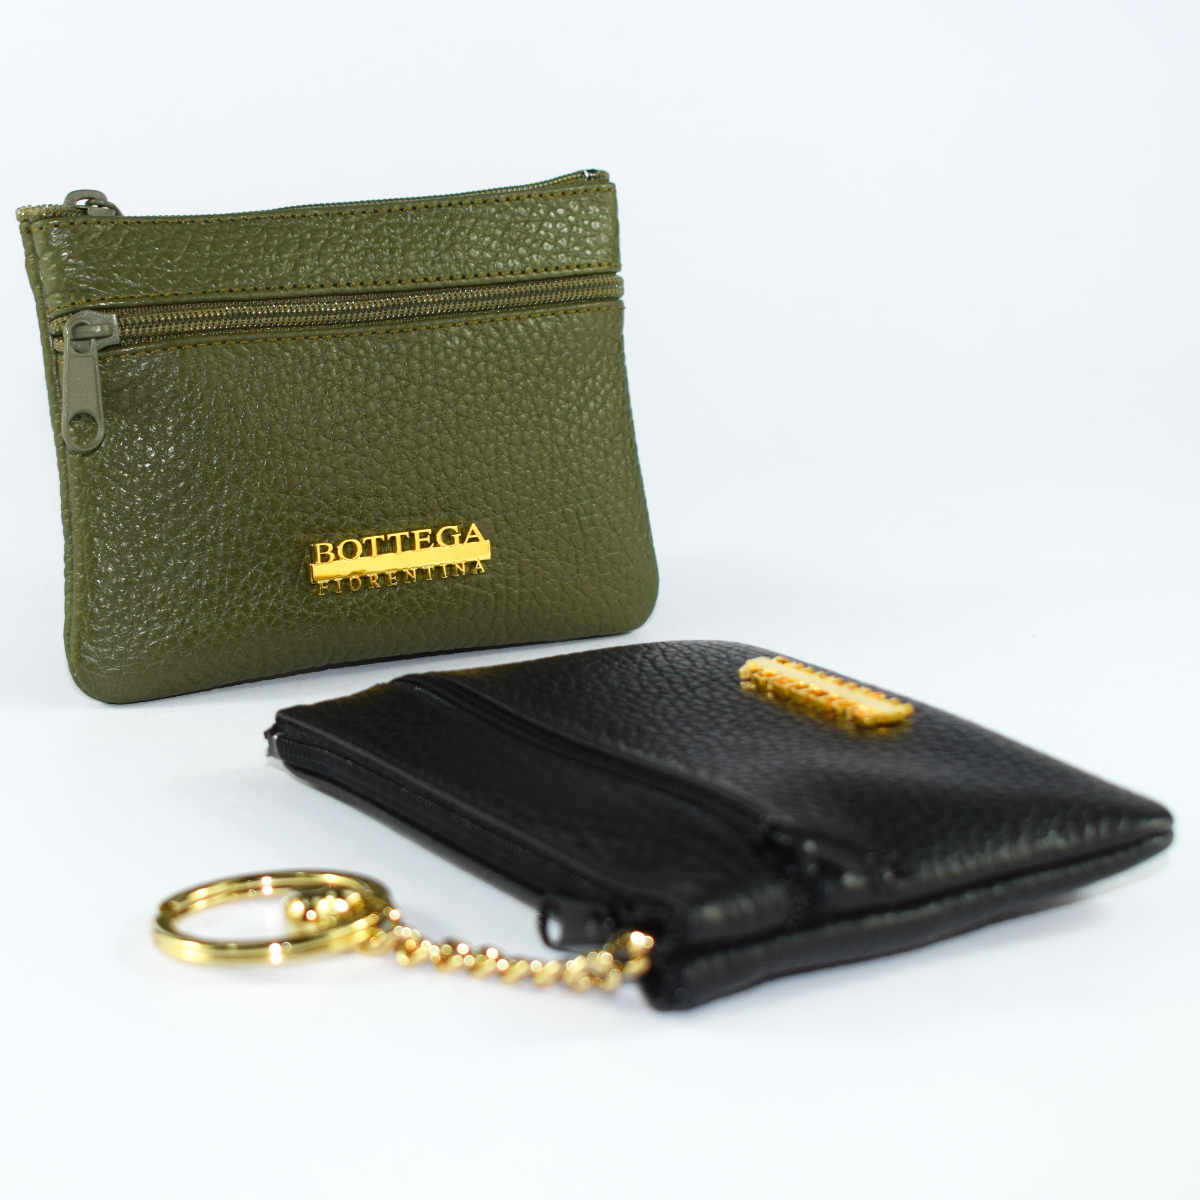 1457 KEYCHAIN ENVELOPE by Bottega Fiorentina